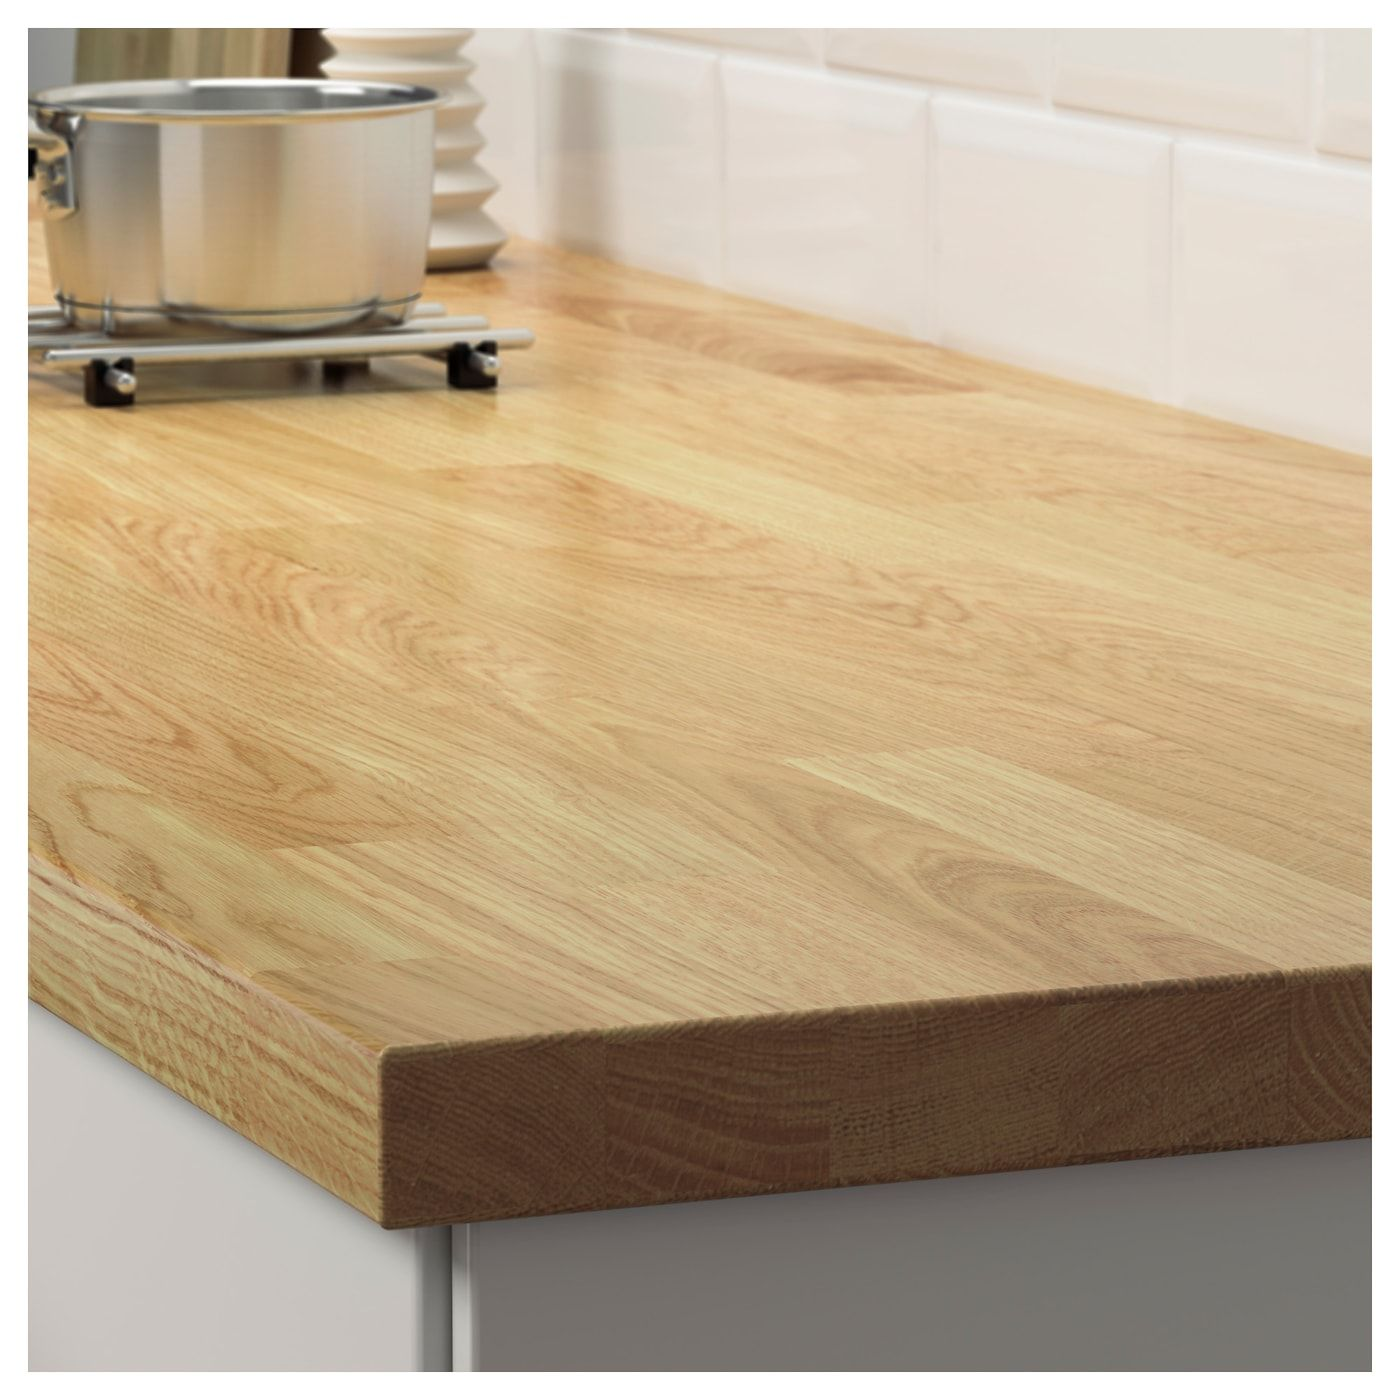 Karlby Countertop For Kitchen Island Oak Veneer 74x42x1 1 2 Ikea Karlby Countertop Countertops Wood Countertops